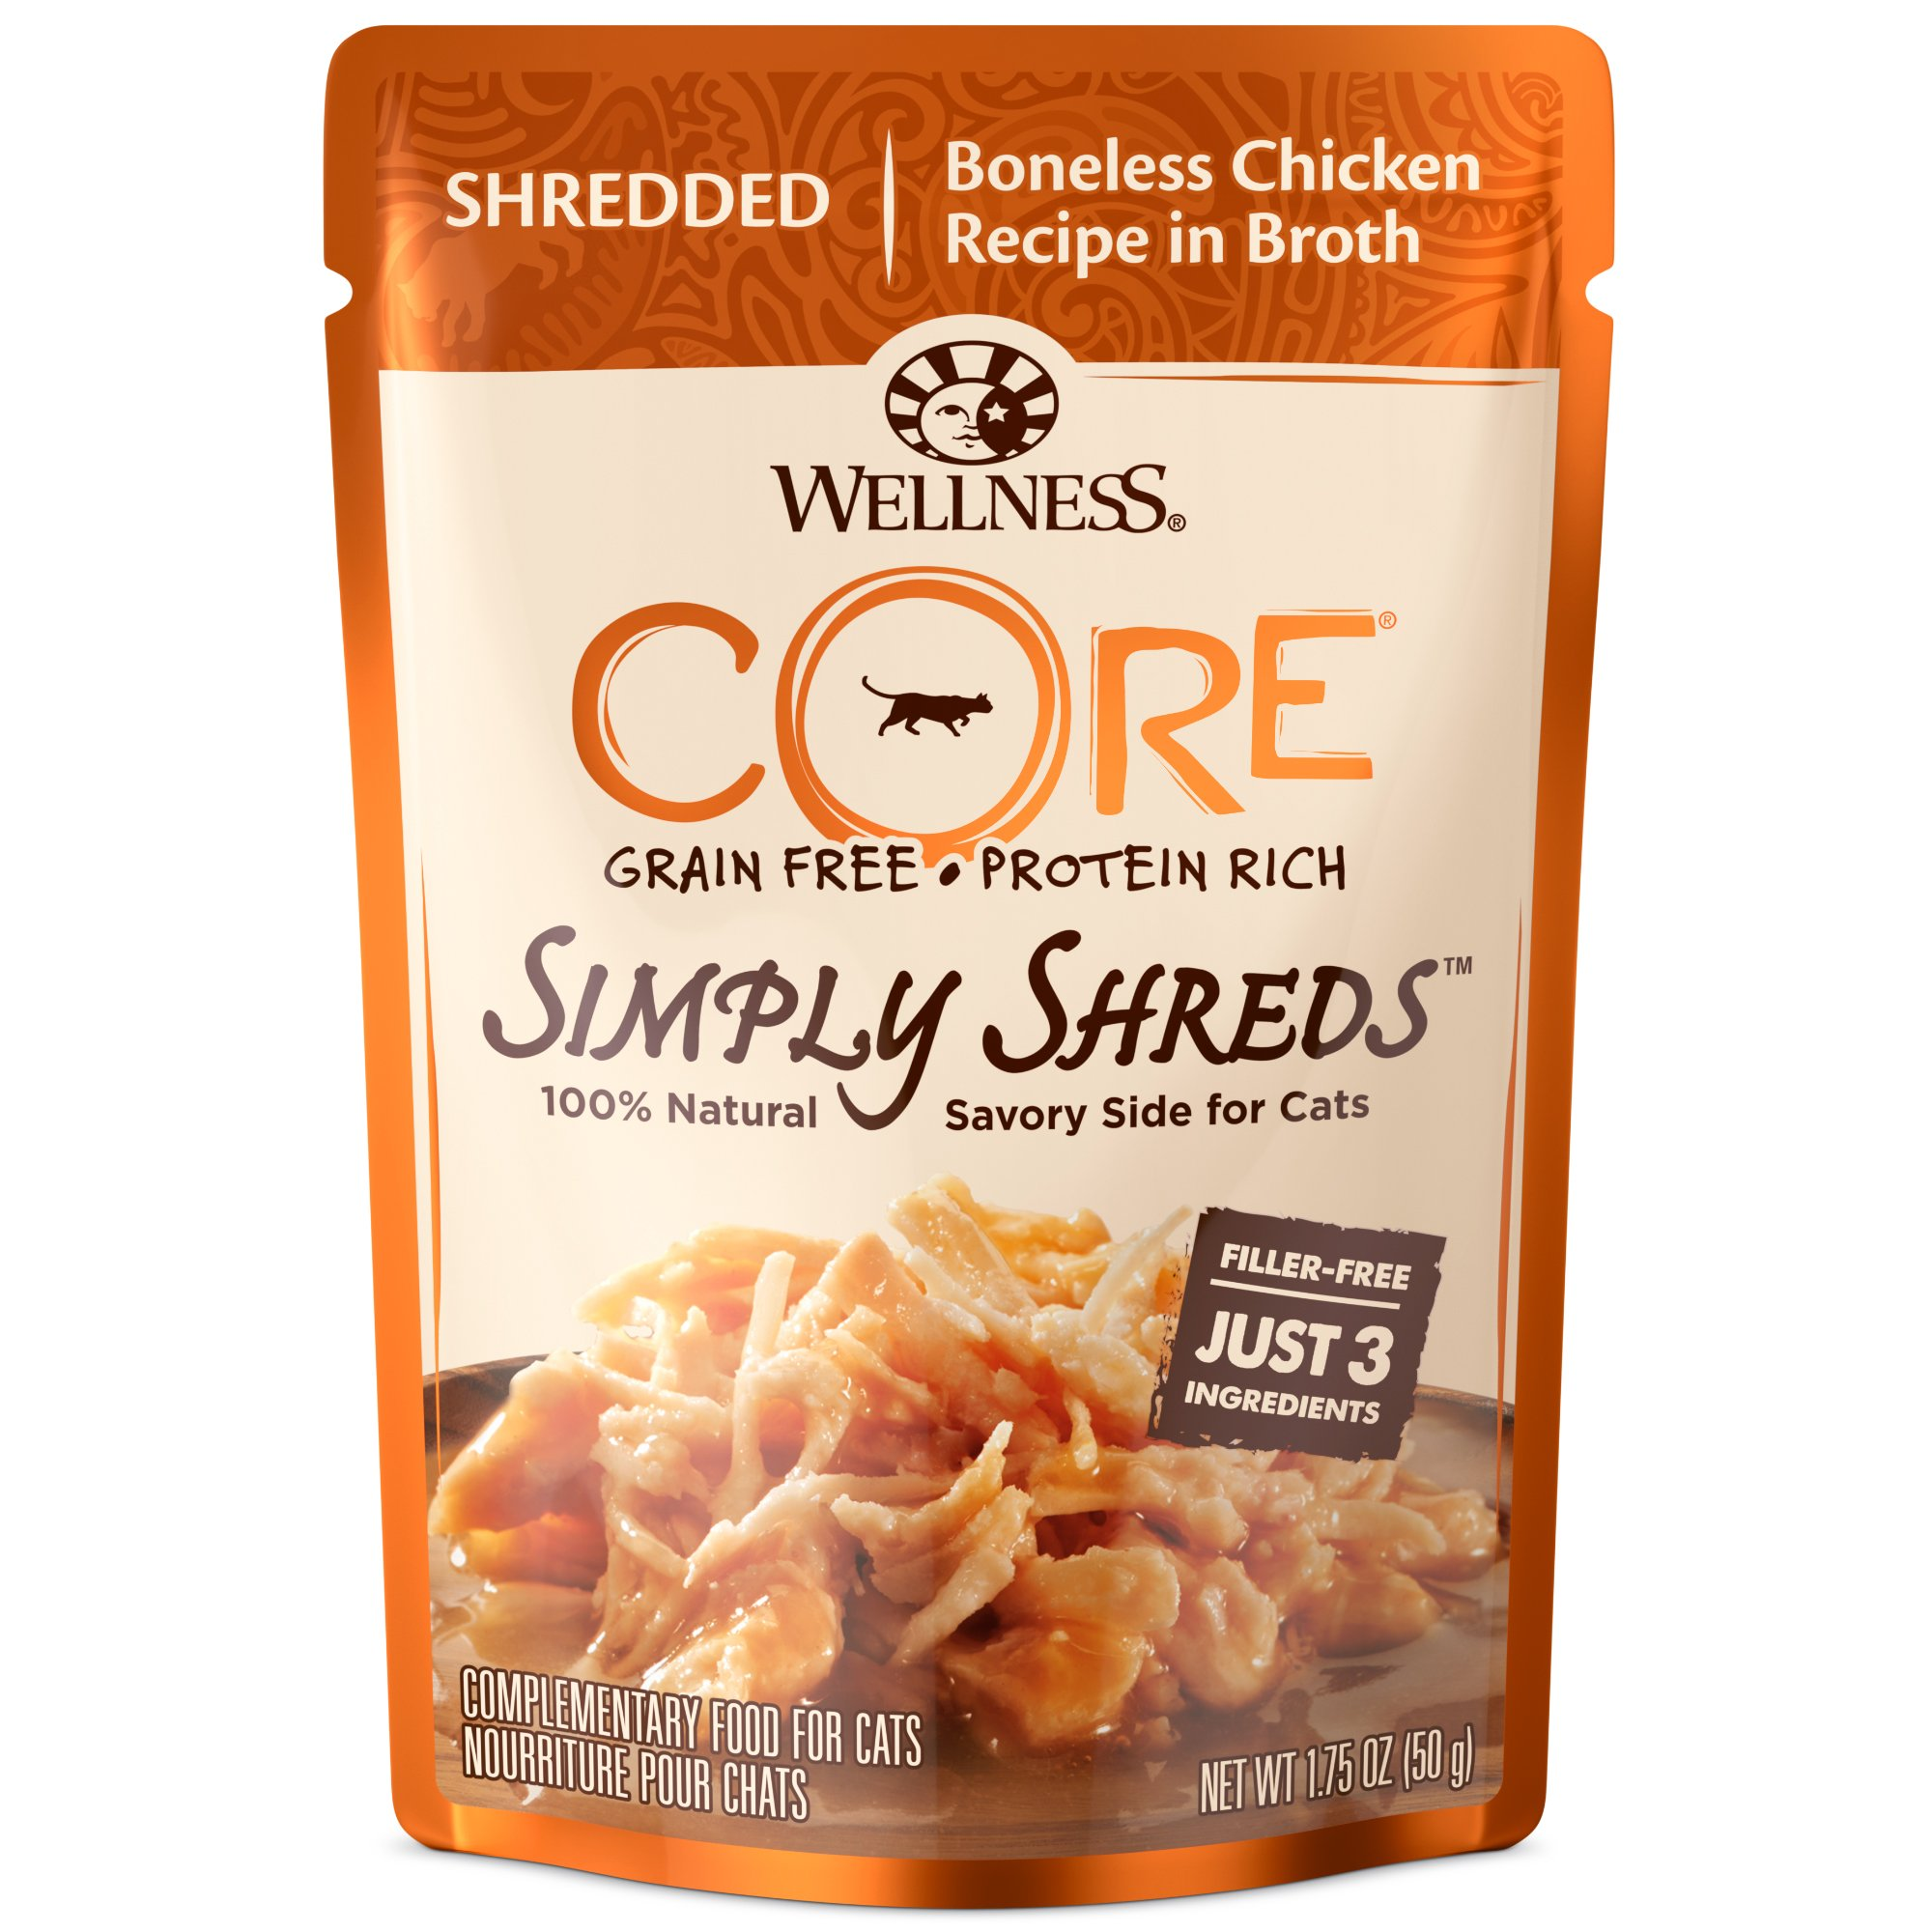 Wellness Core Simply Shreds Grain Free Wet Cat Food Mixer Or Topper, Shredded Boneless Chicken Recipe In Broth , 1.75-Ounce Pouch (Case Of 12) by Wellness Natural Pet Food